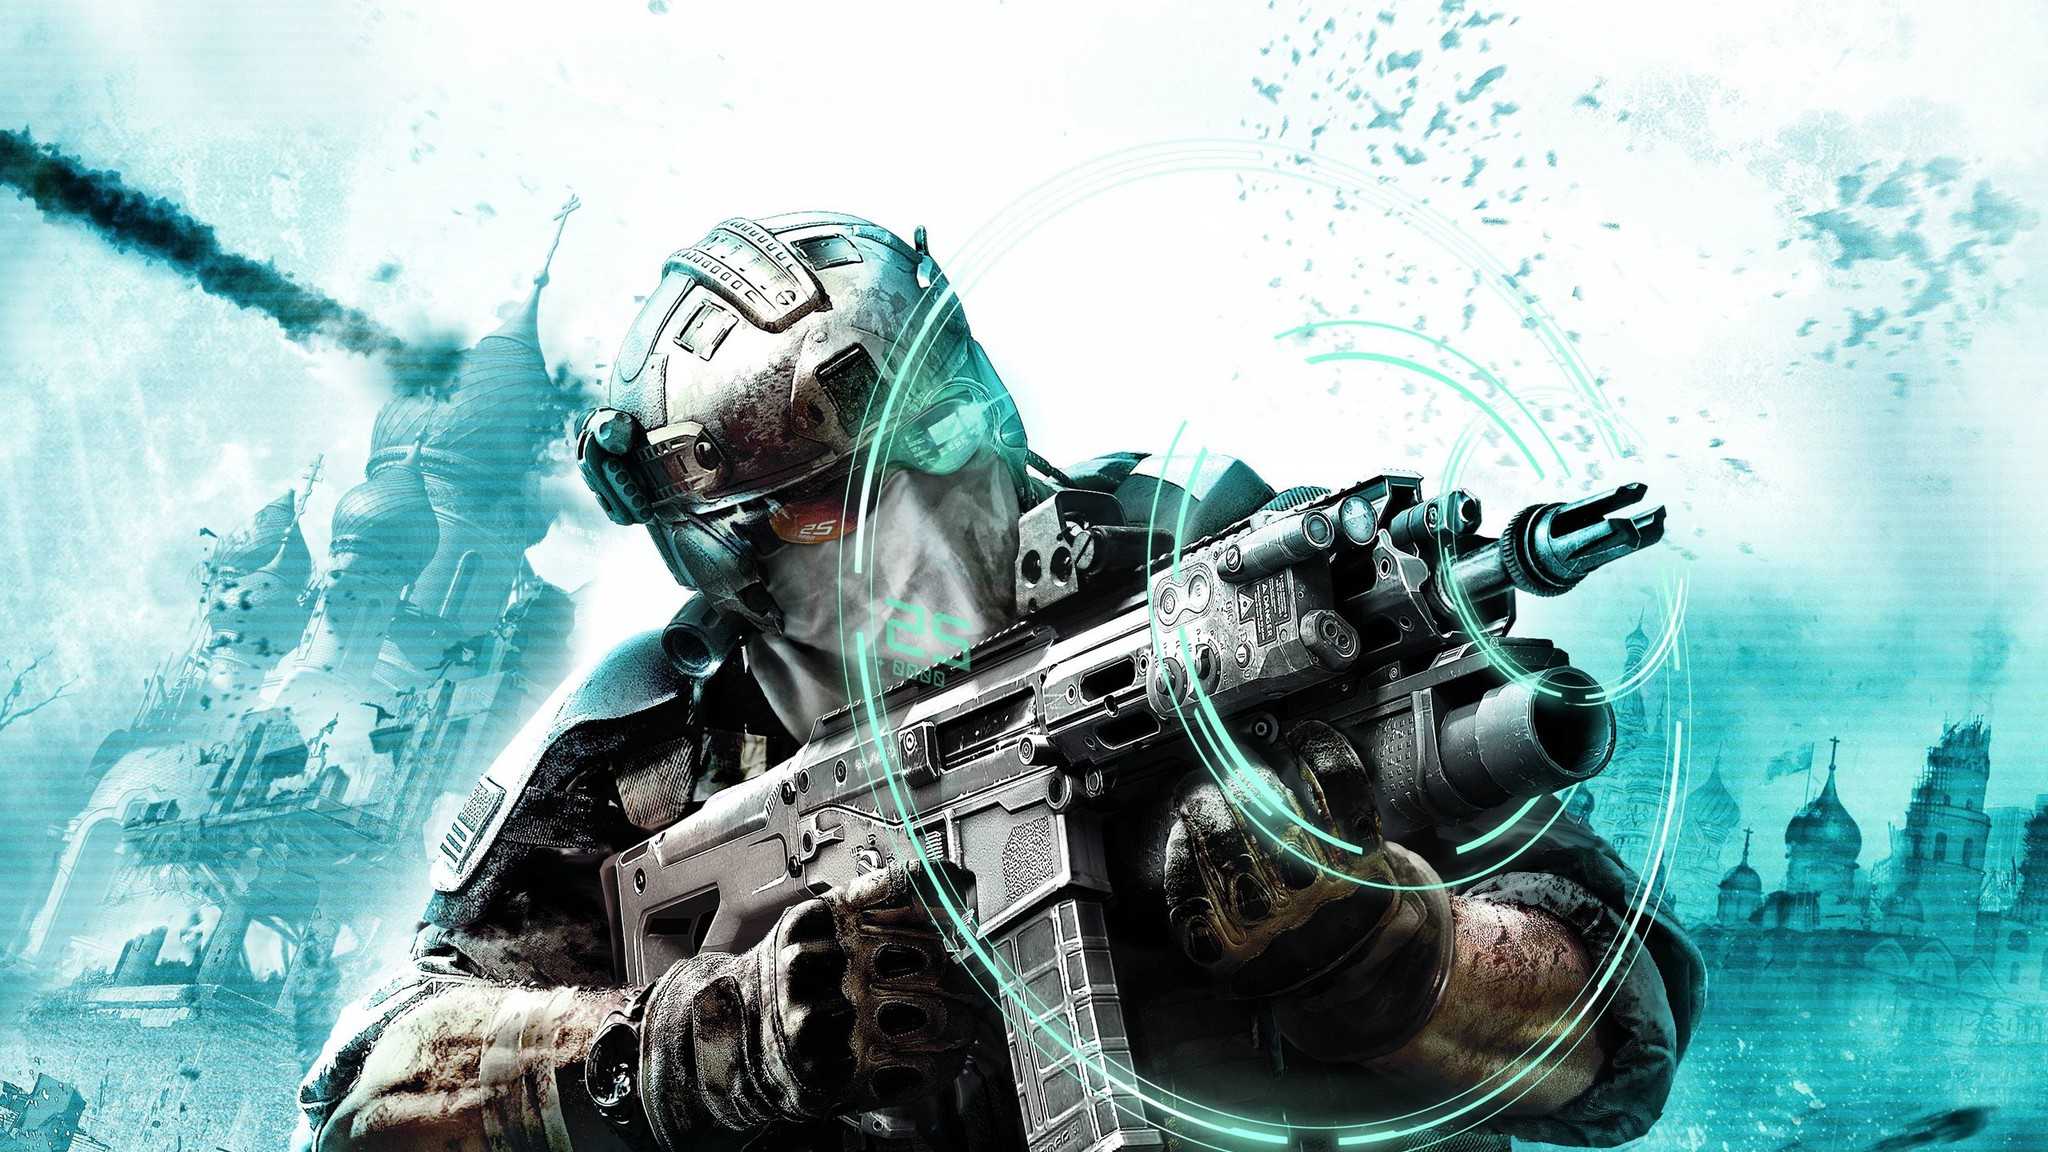 Futuristic Weapons Technology Ghost Recon Future Soldier